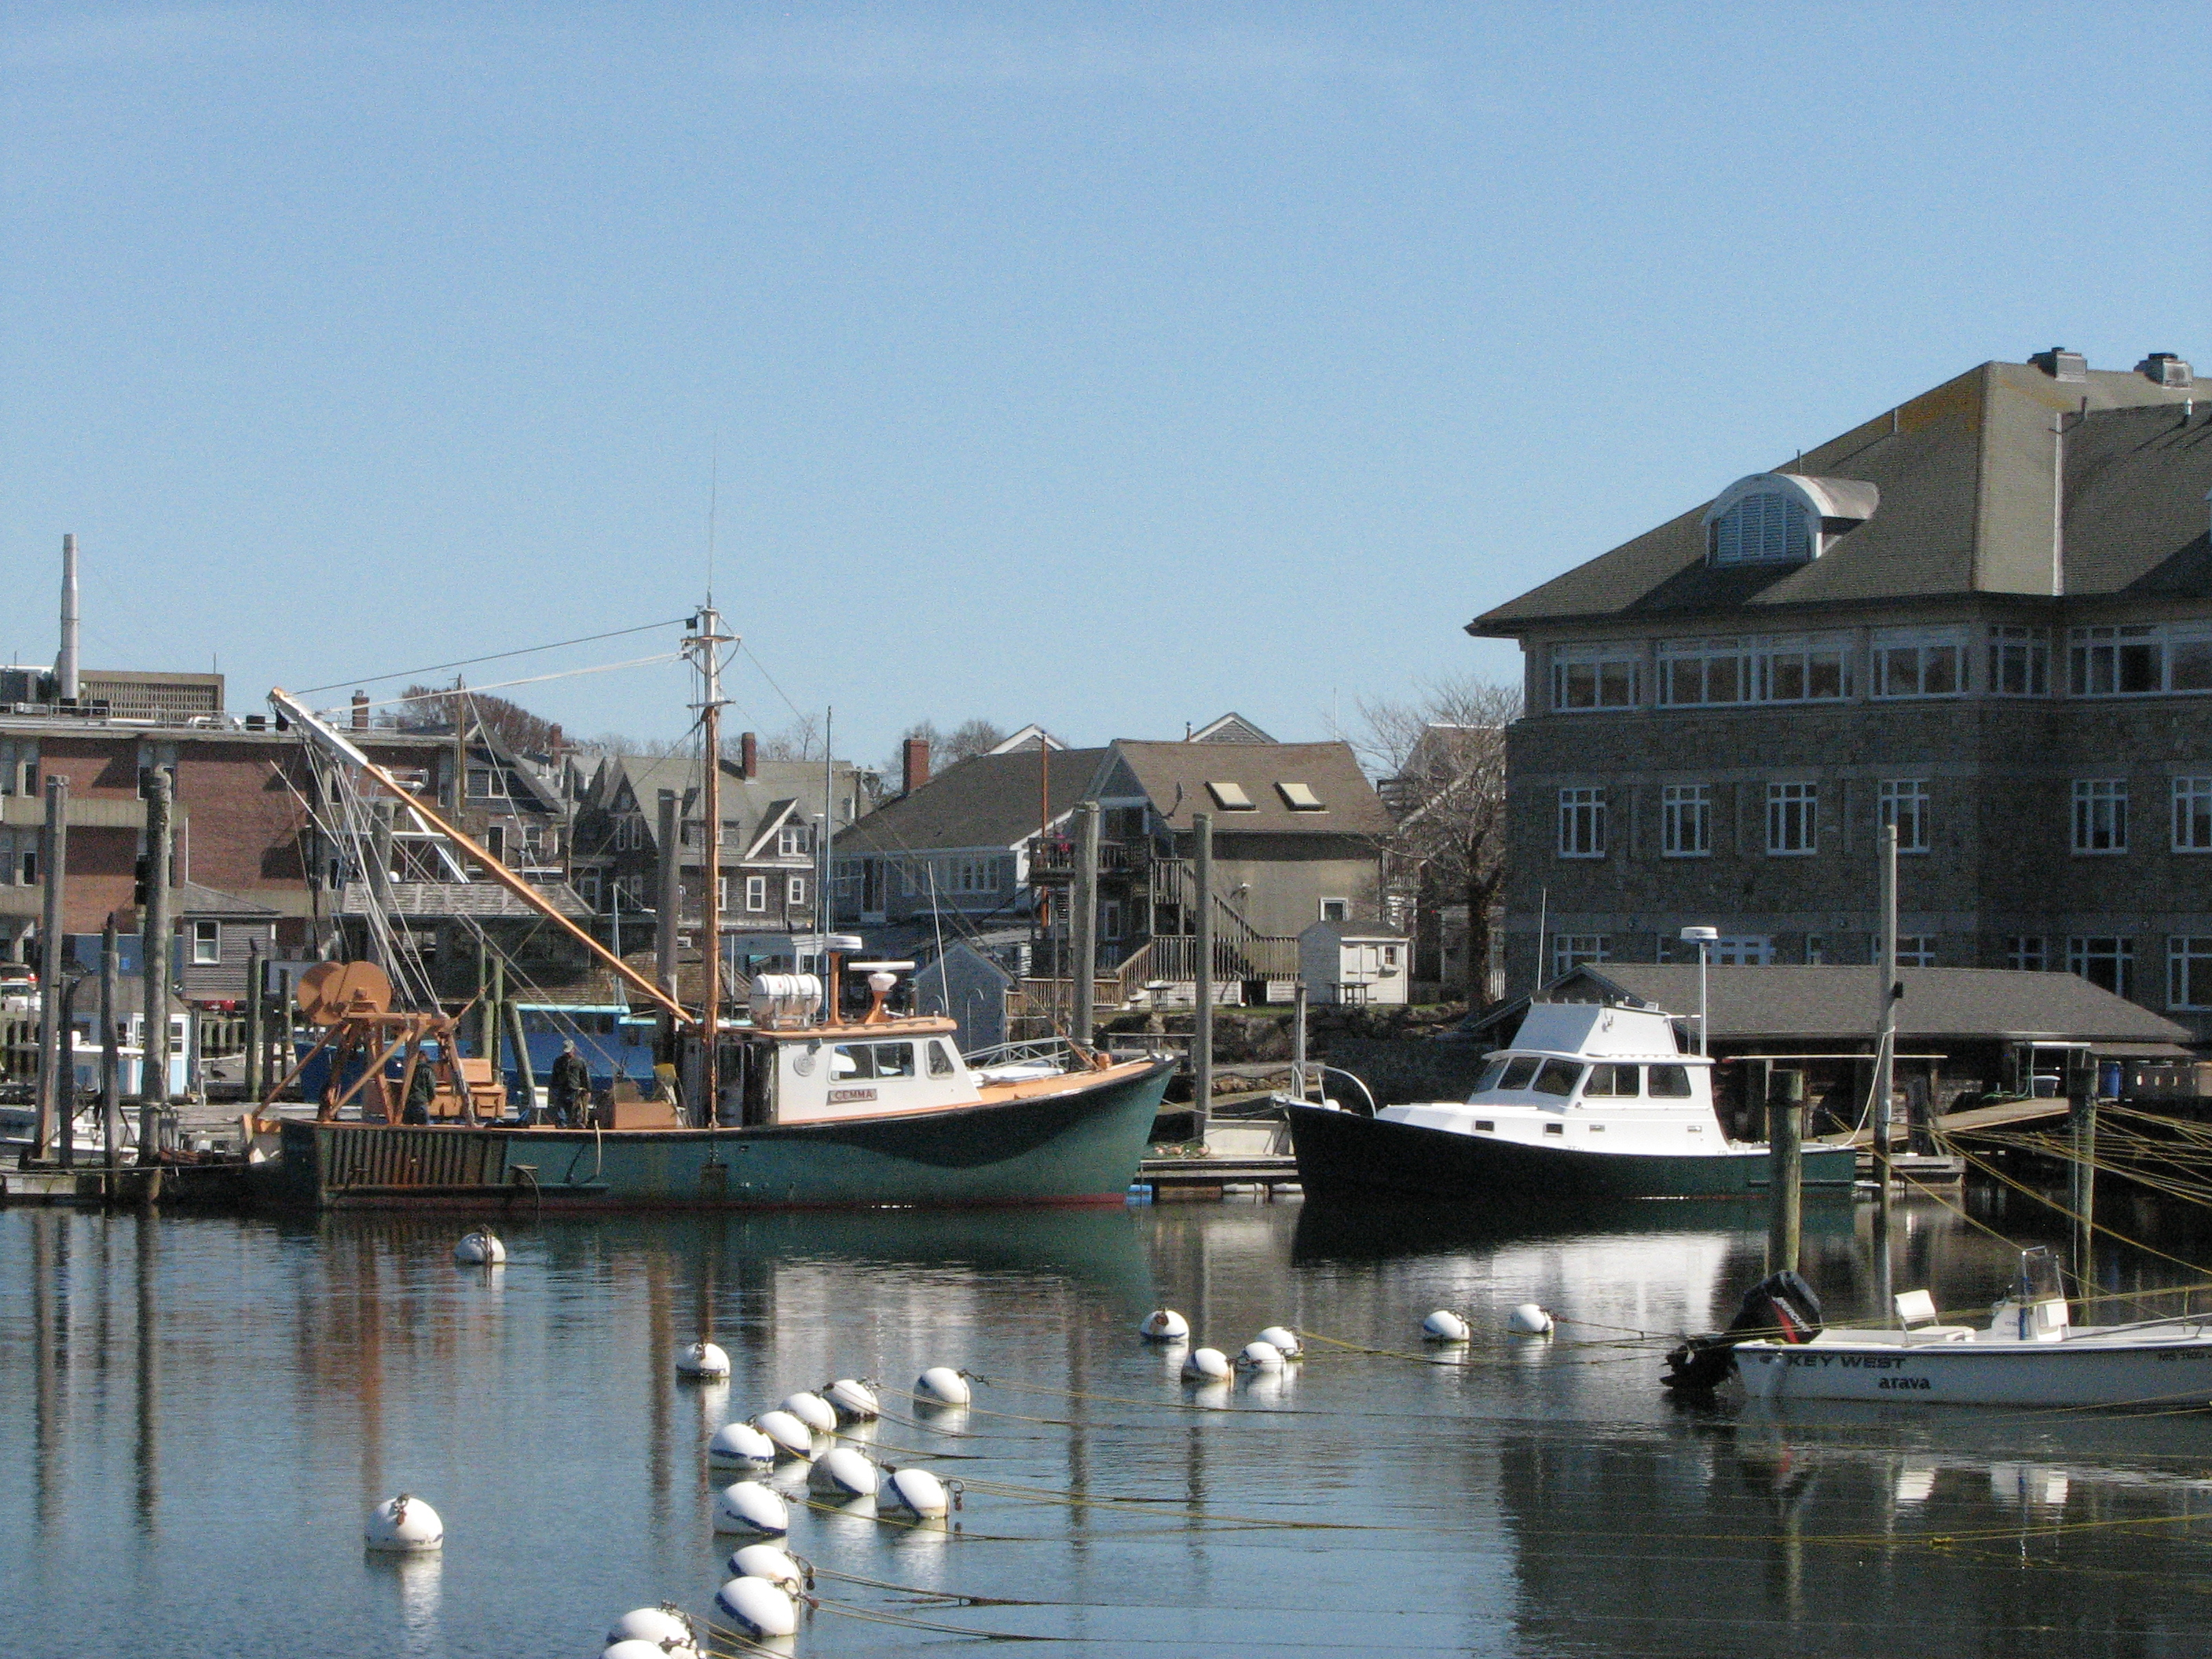 New england harbor, Boathouse, Boats, England, Harbor, HQ Photo